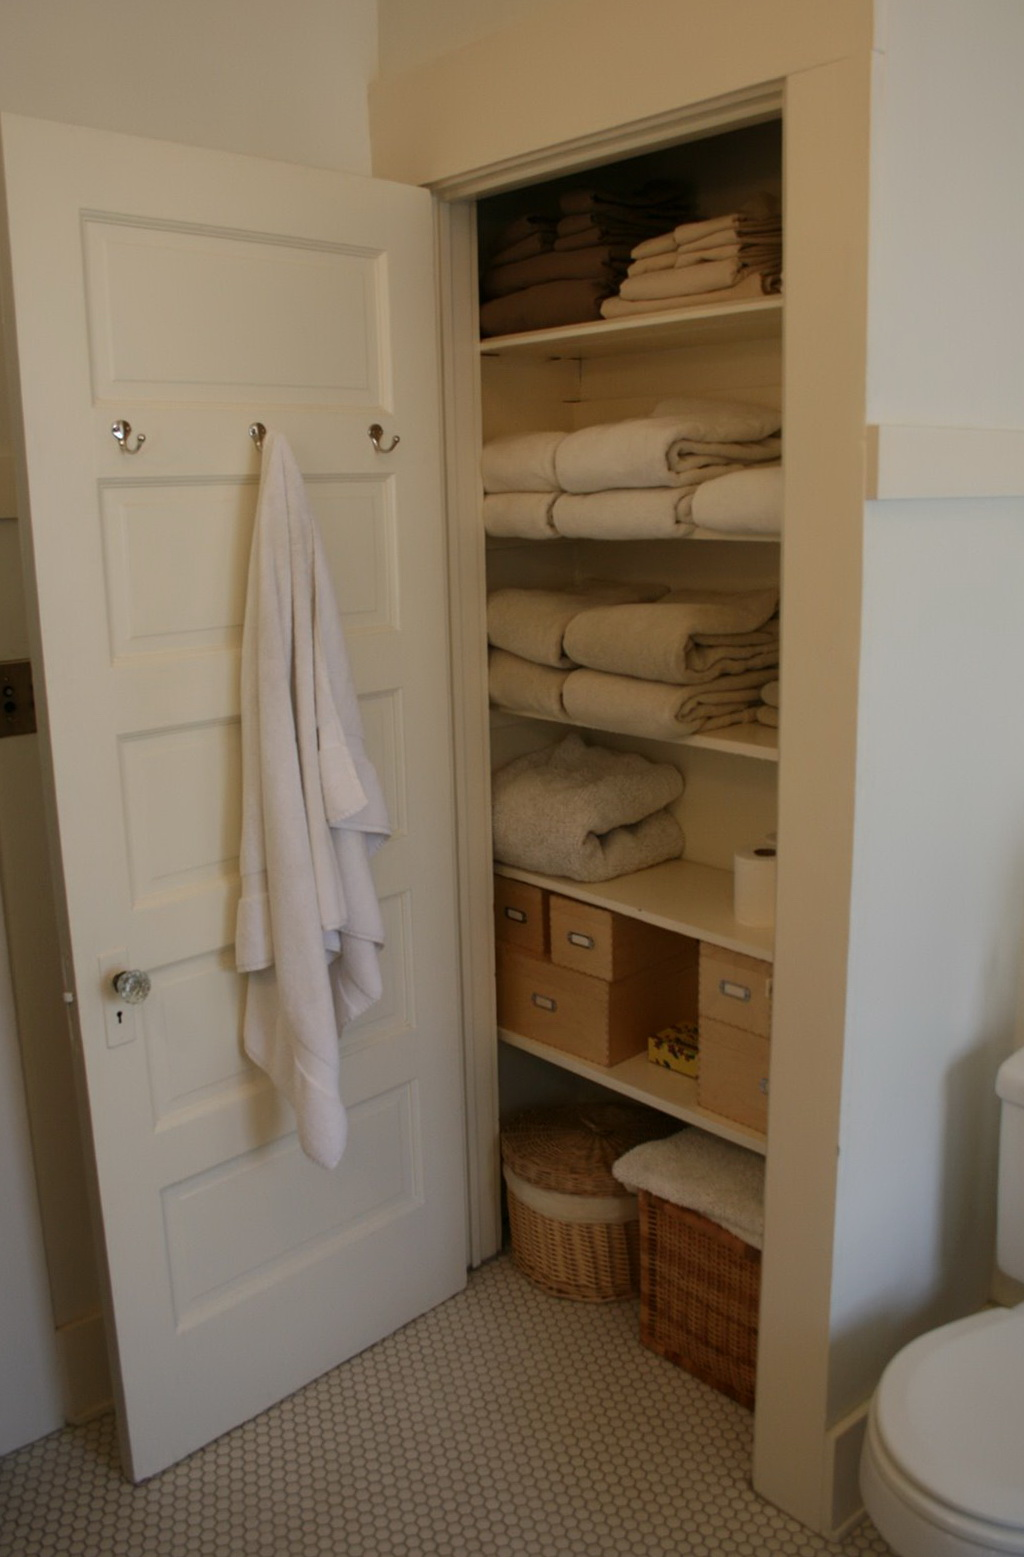 bathroom linen closet ideas home design ideas bathroom linen closet storage ideas Bathroom Linen Closet Organization